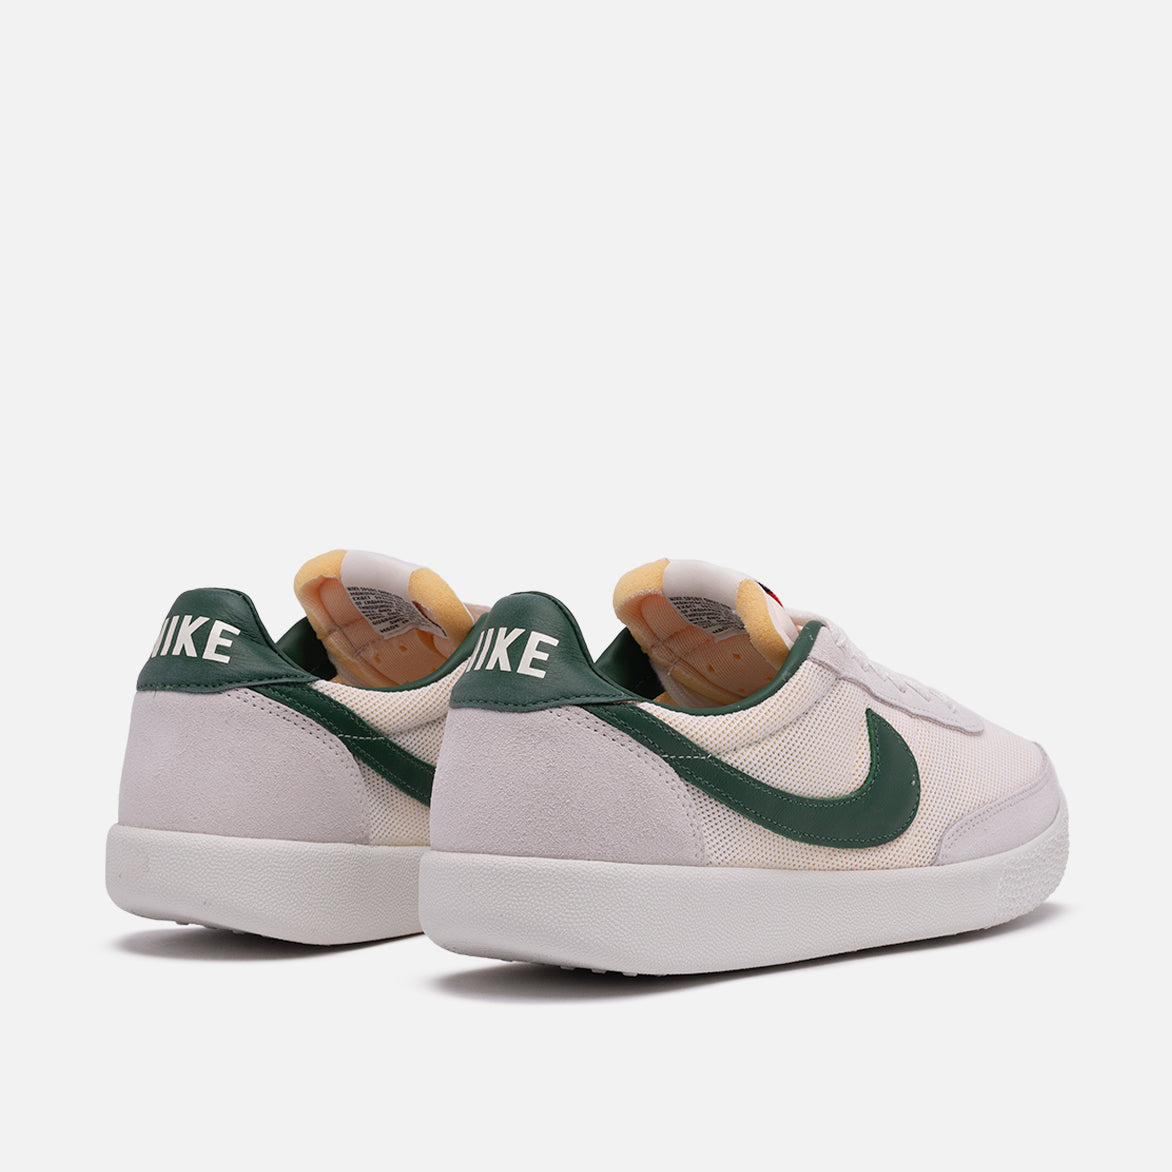 "NIKE KILLSHOT OG SP ""GREEN GORGE"""